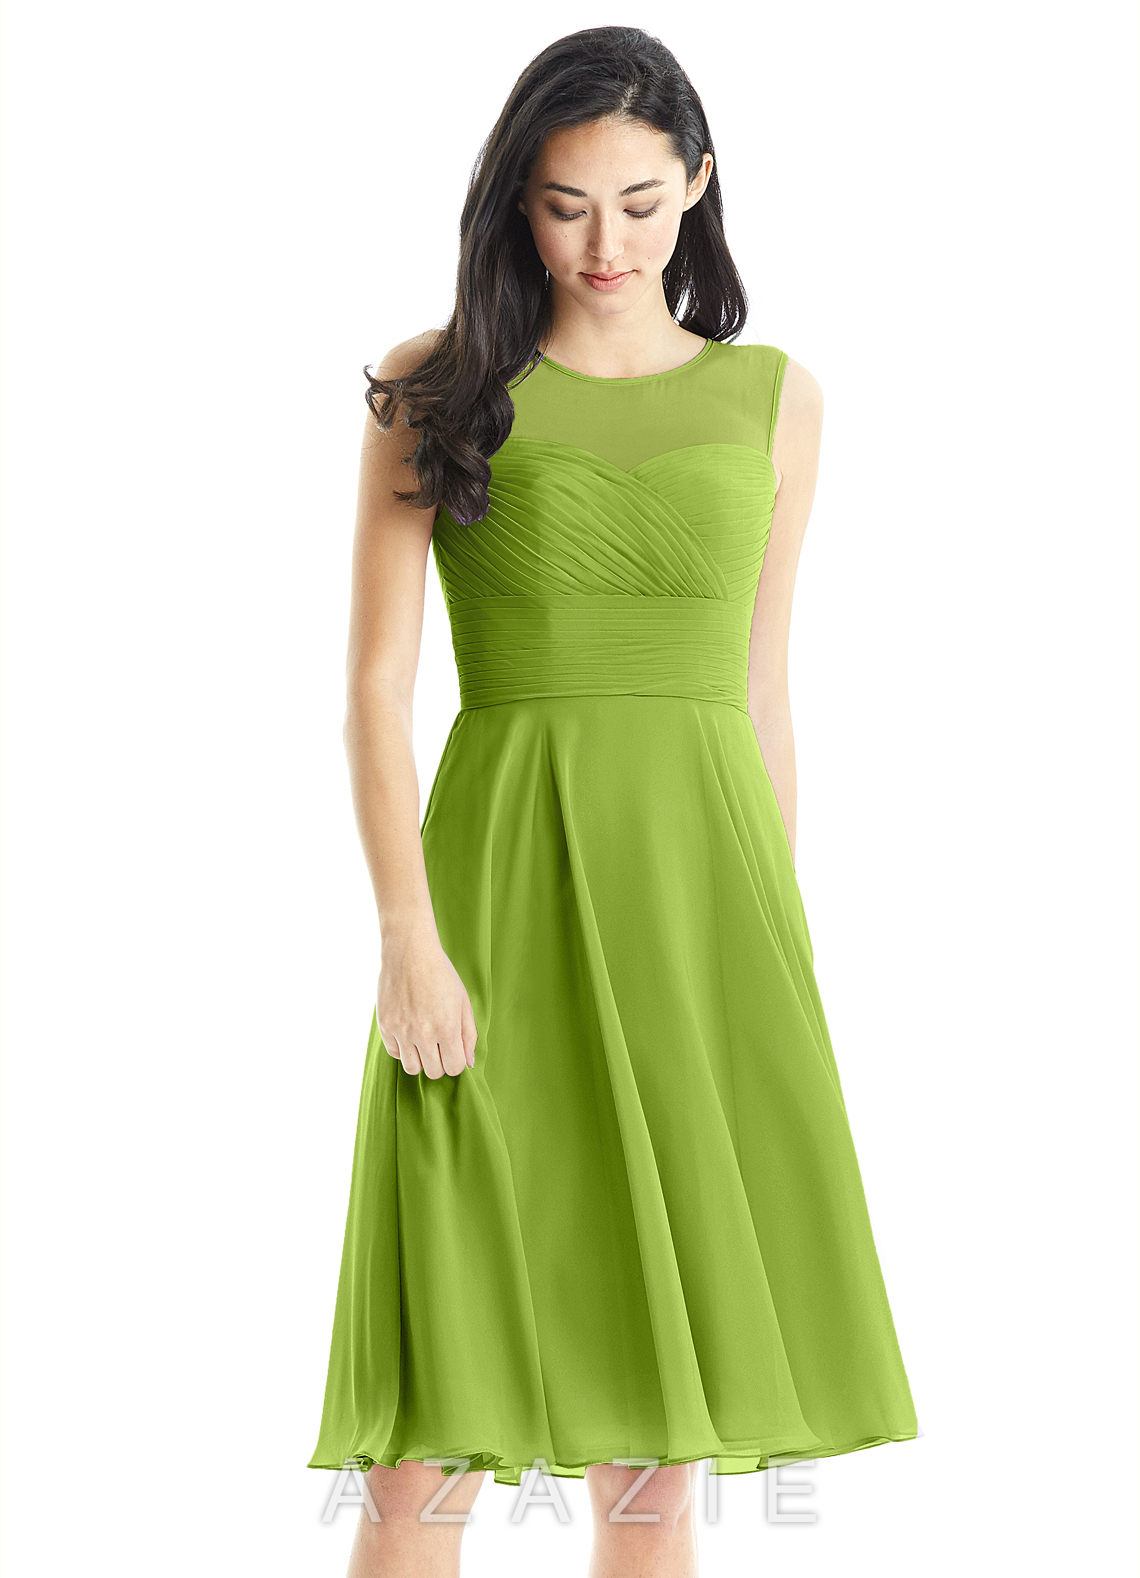 Azazie scarlett bridesmaid dress azazie color clover ombrellifo Choice Image